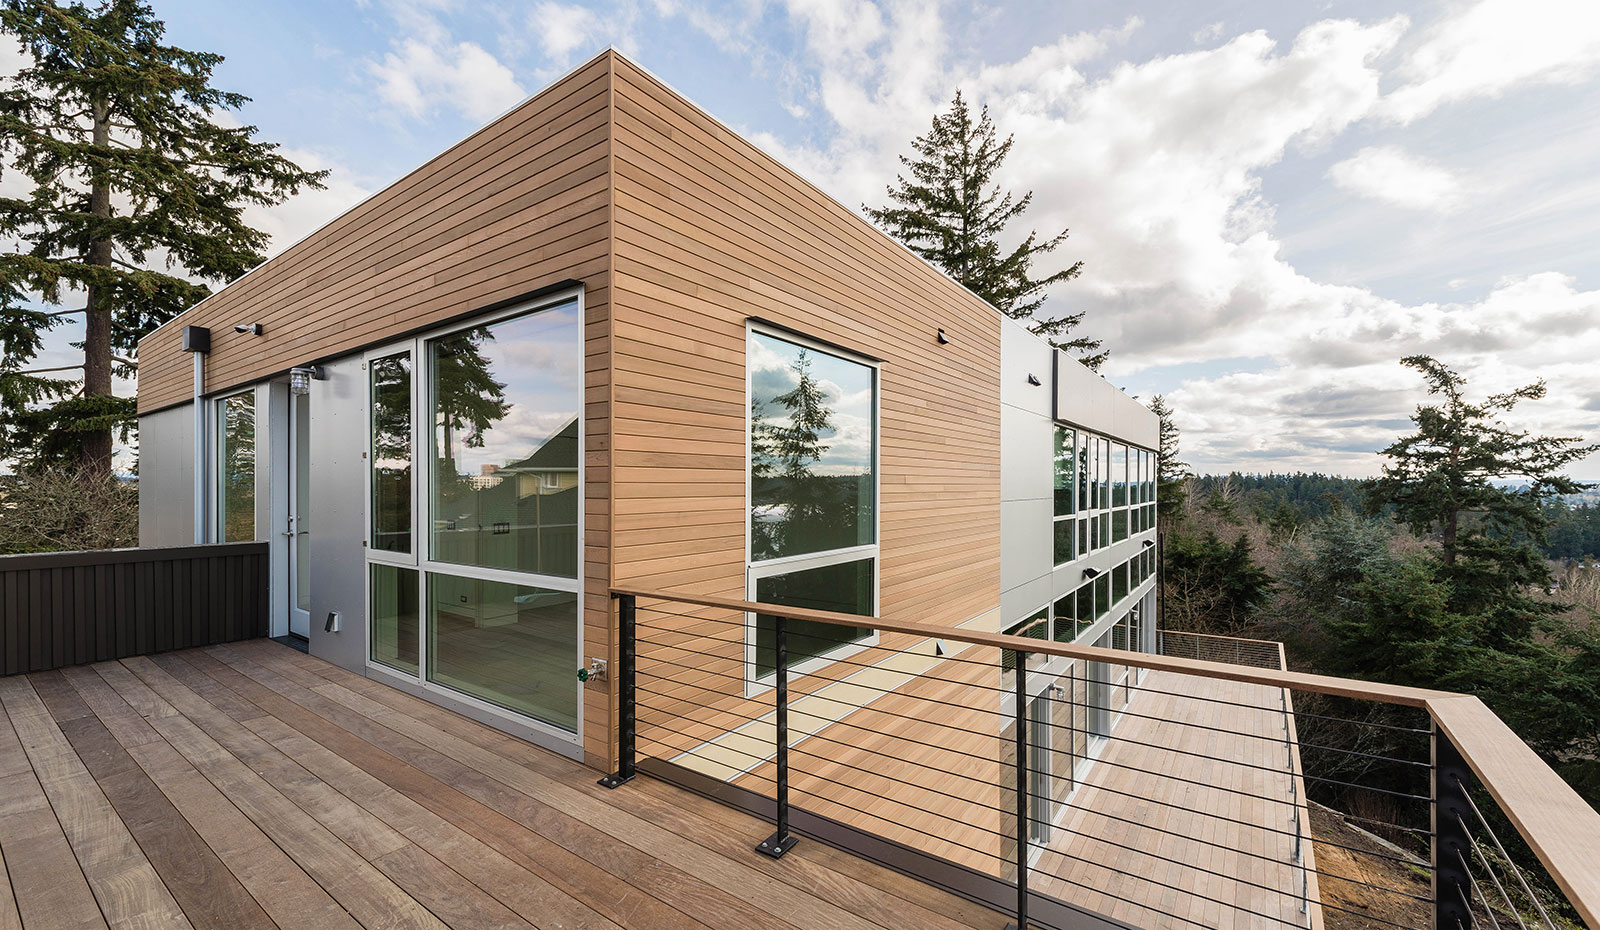 Delightful The Technical Methods Behind The East Elevation Involve Two Siding  Strategies. The Horizontal 1×4 Tu0026G Cedar Siding Sits On A Conventional  Rainscreen ...